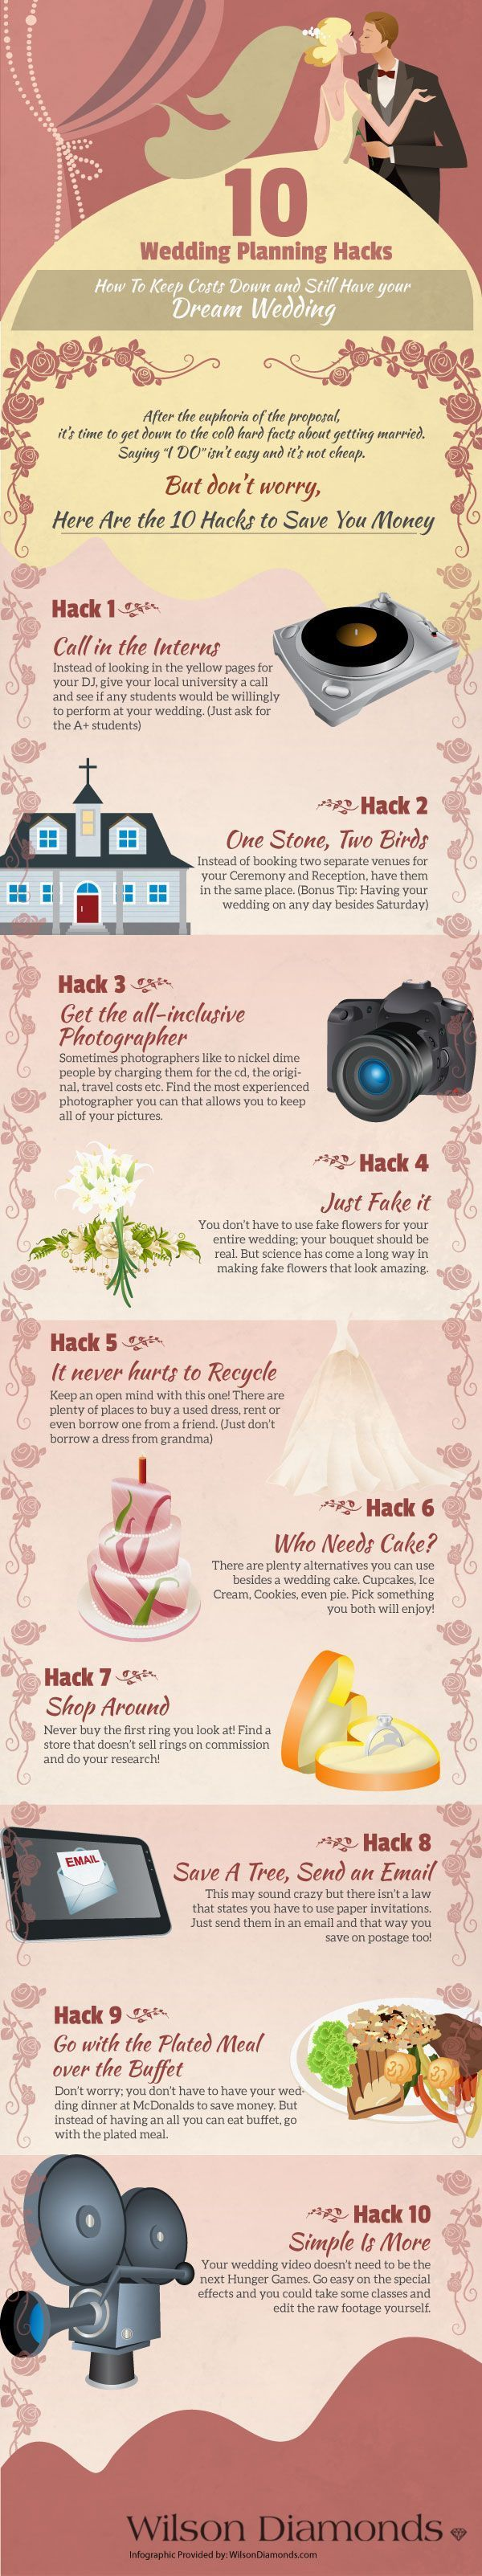 10 Wedding Planning Hacks. This is actually a really good list with some different ideas